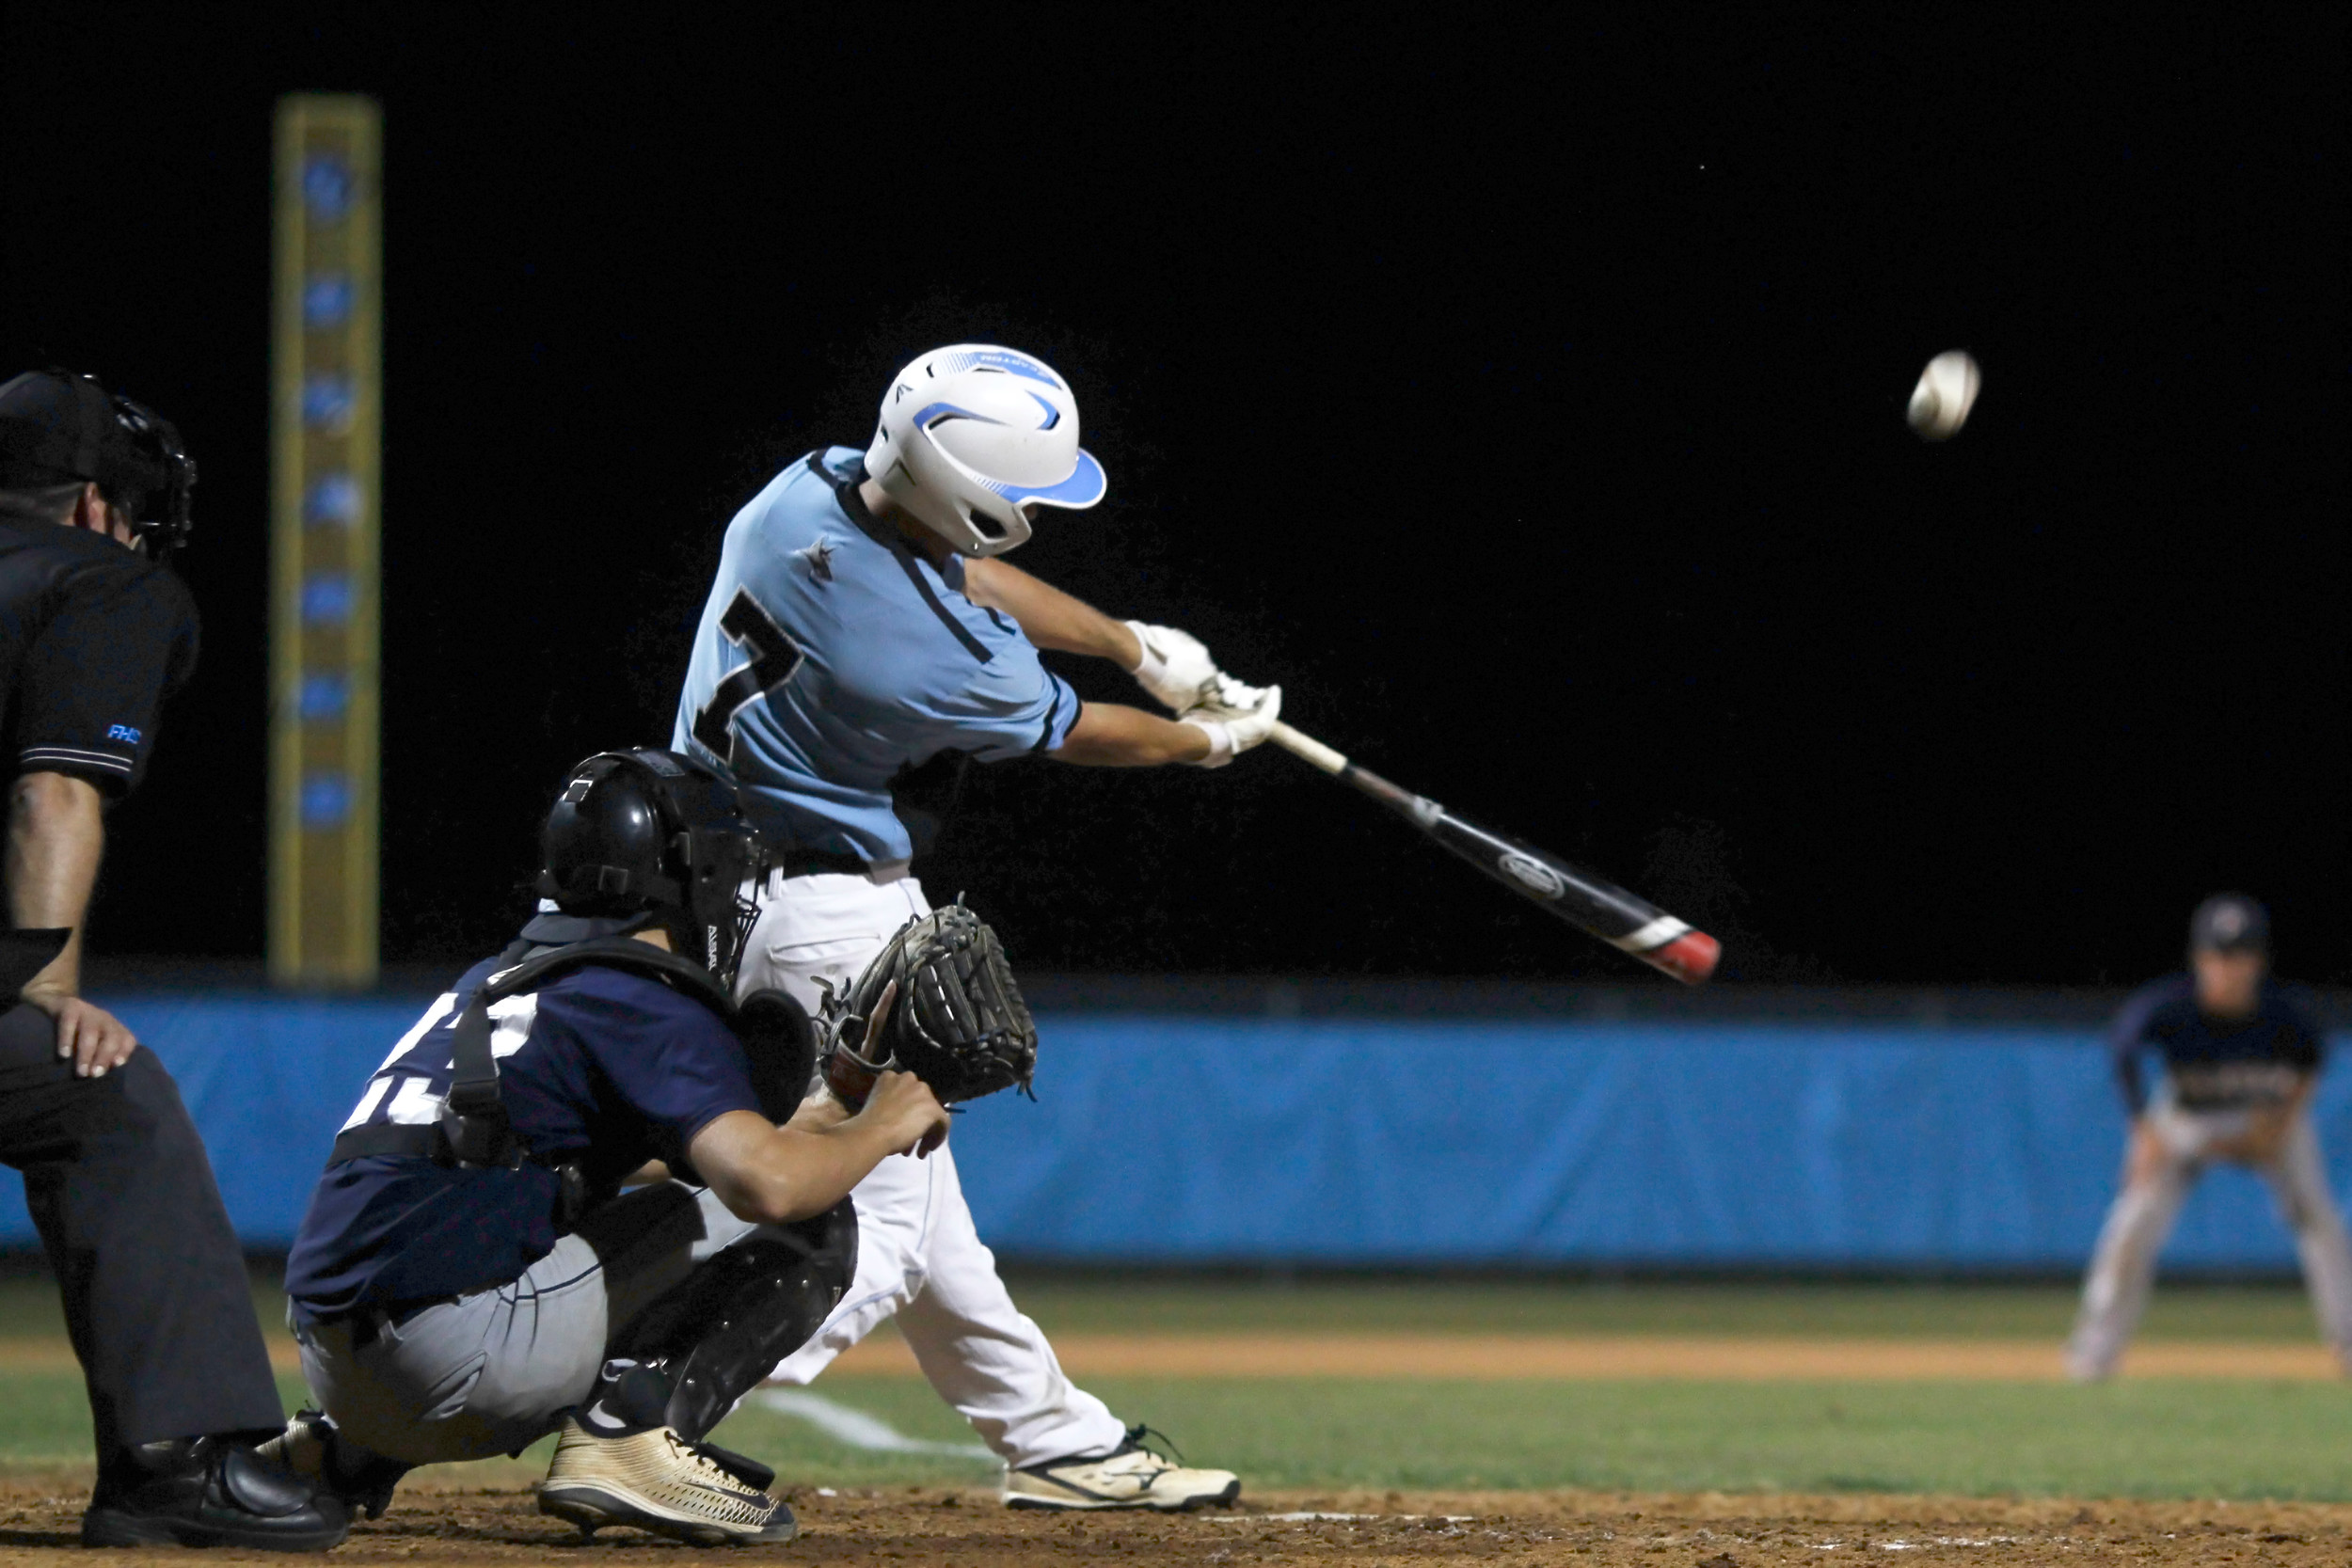 Jack Hahnemann lines a base hit for the Sharks against Paxon.